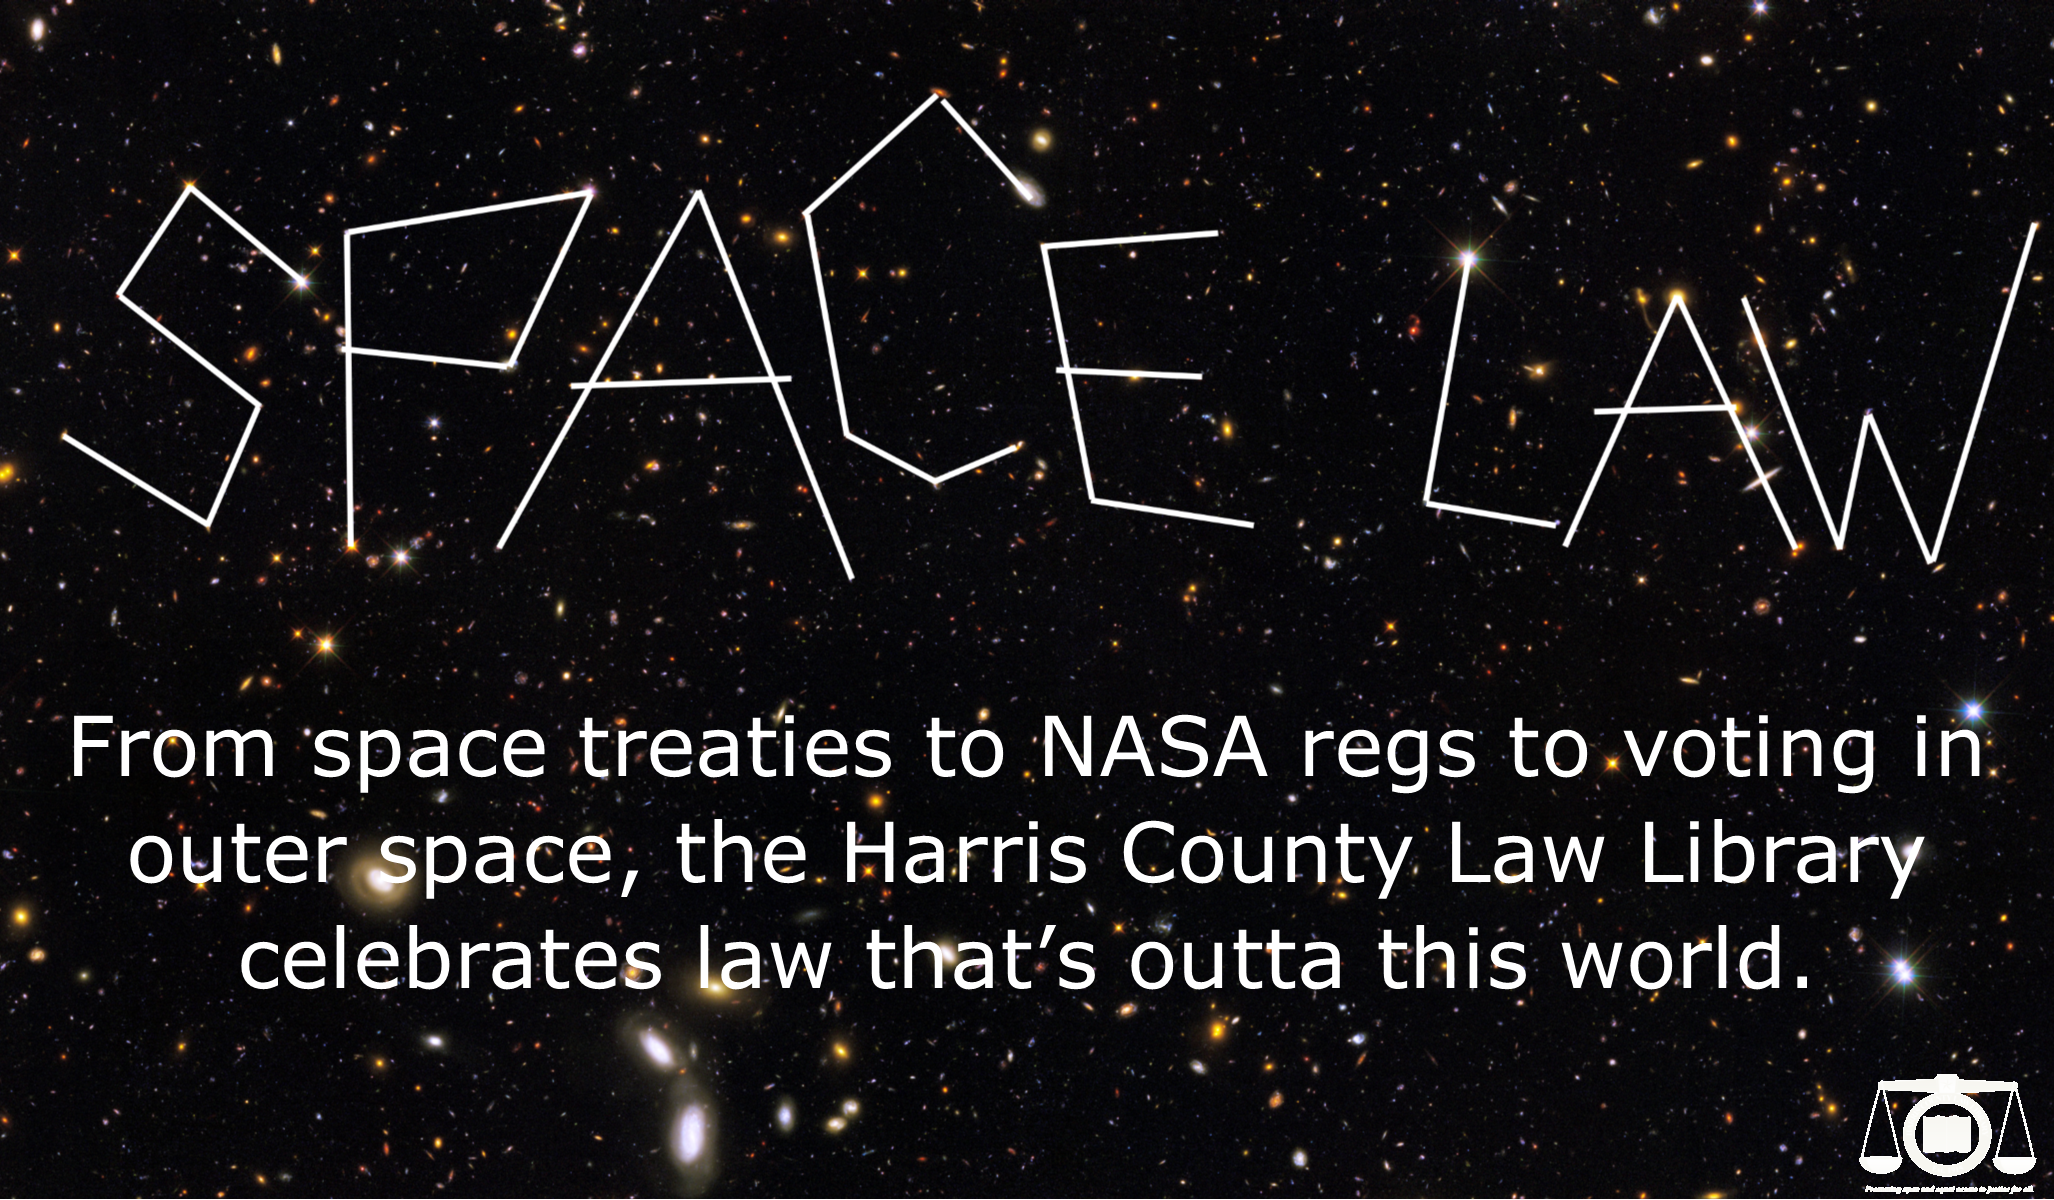 From space treaties to NASA regu to voting in outer space, the Harris County Law Library celebrates law that's outta this world.